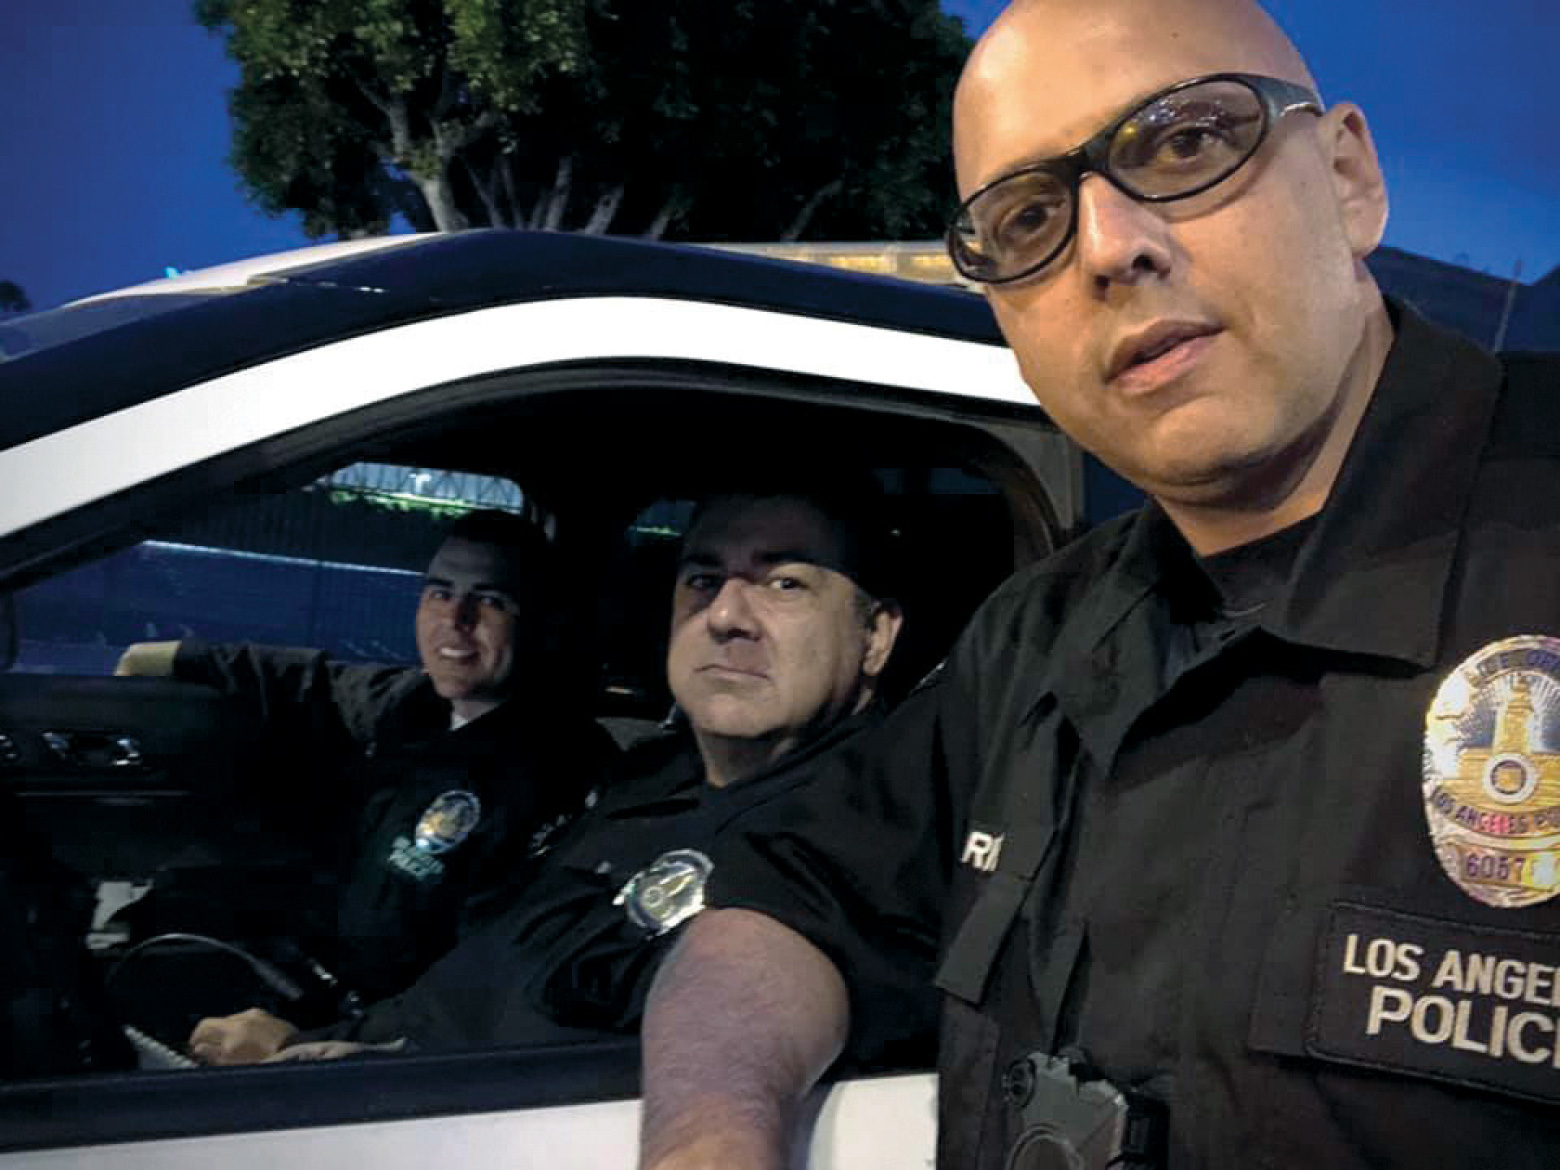 lapd-reserves-go-above-and-beyond-part-two-11